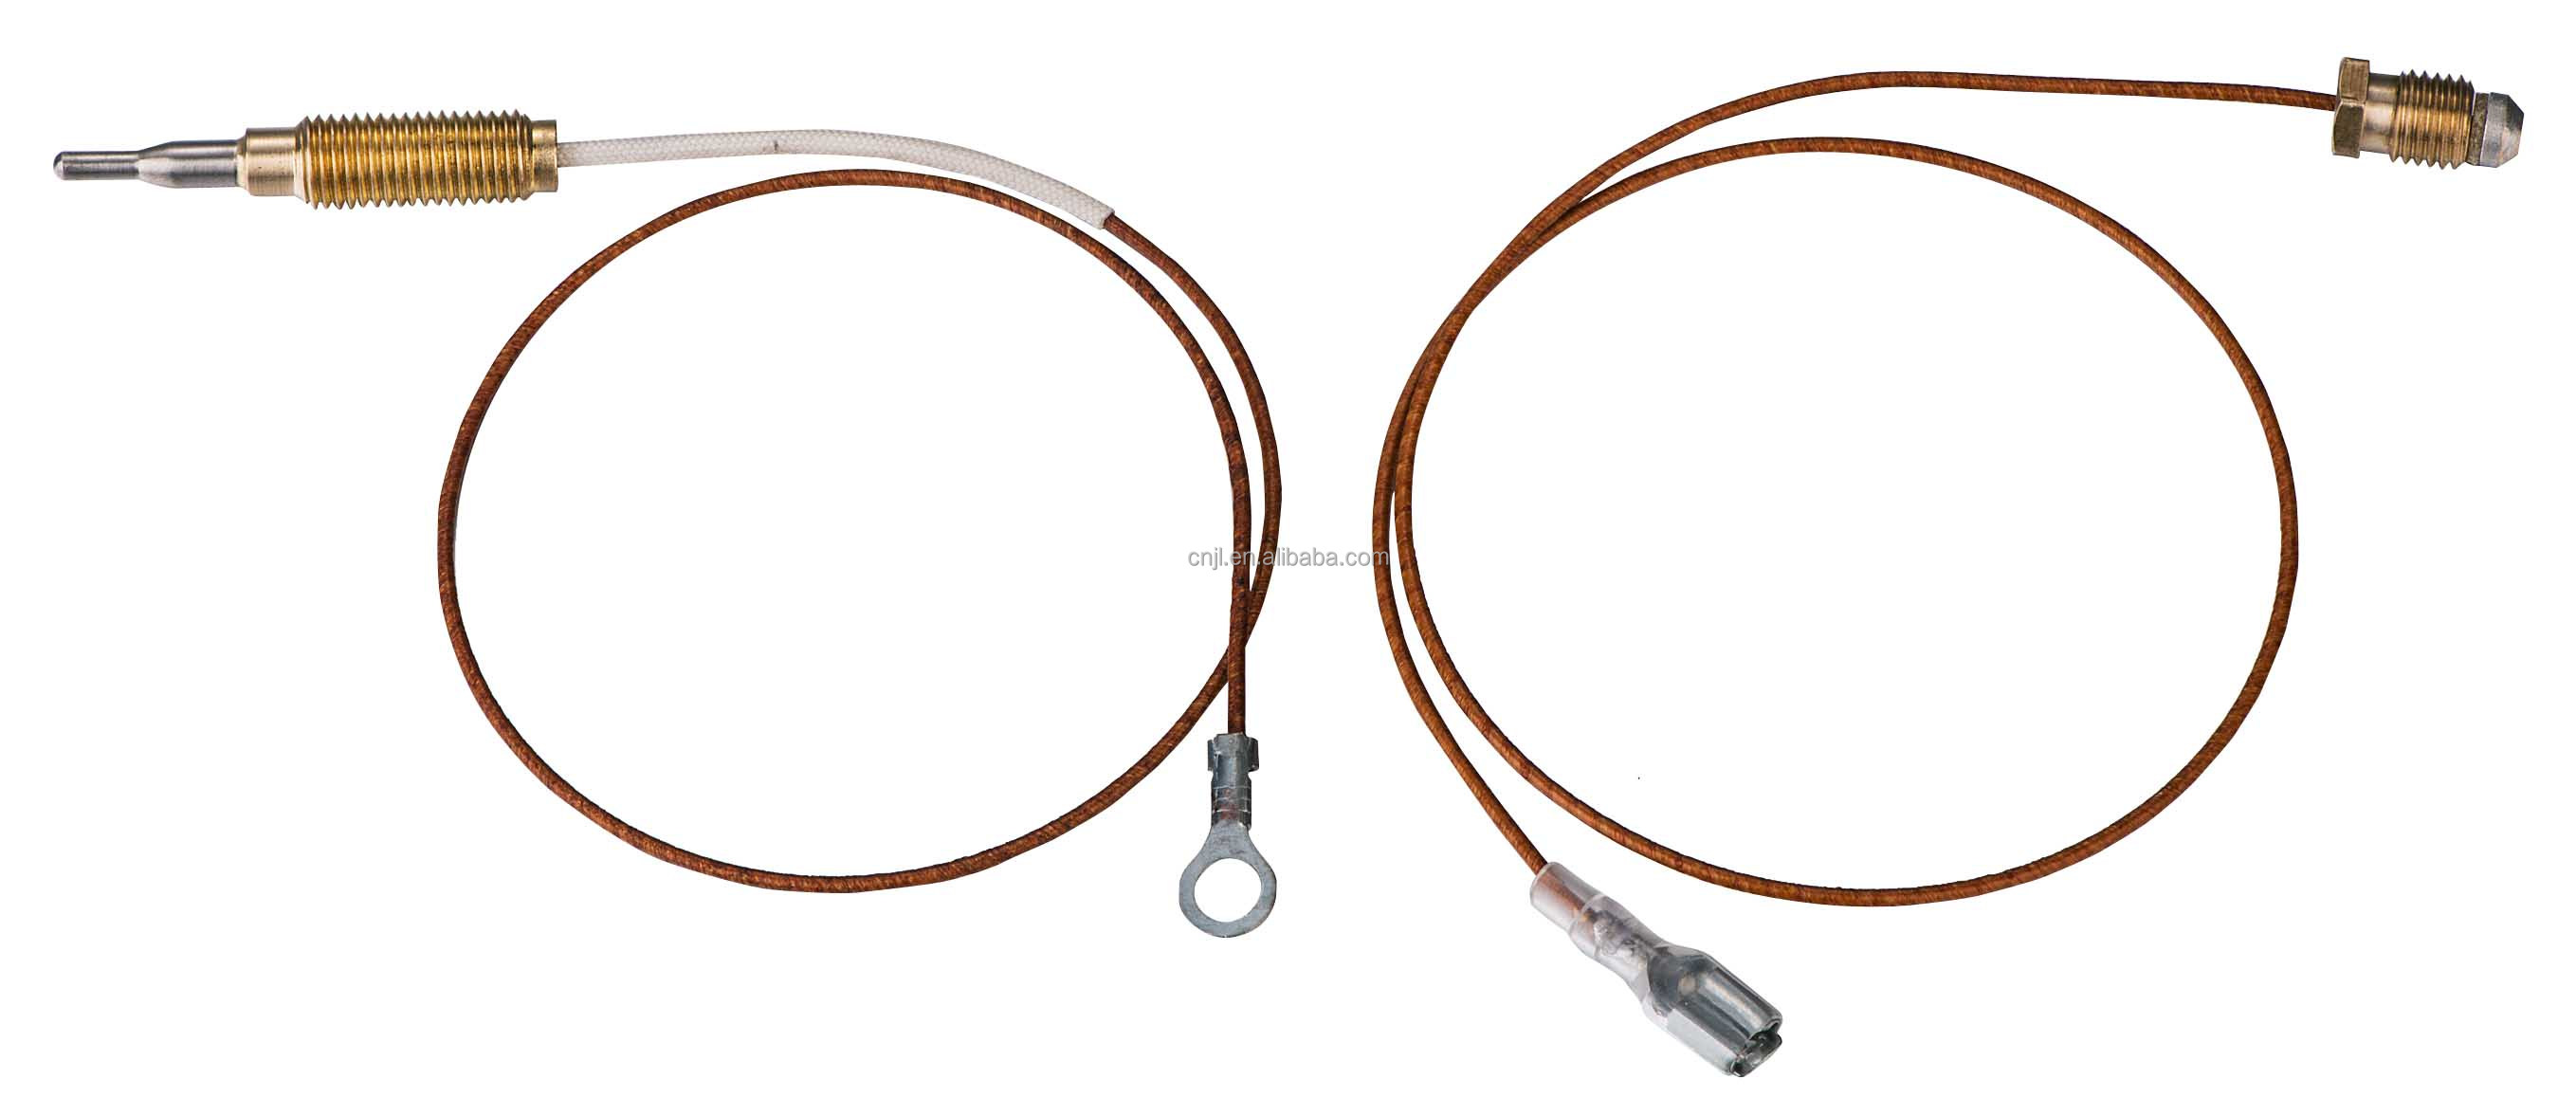 cheapest thermocouples for gas stove oven fireplace thermocouple